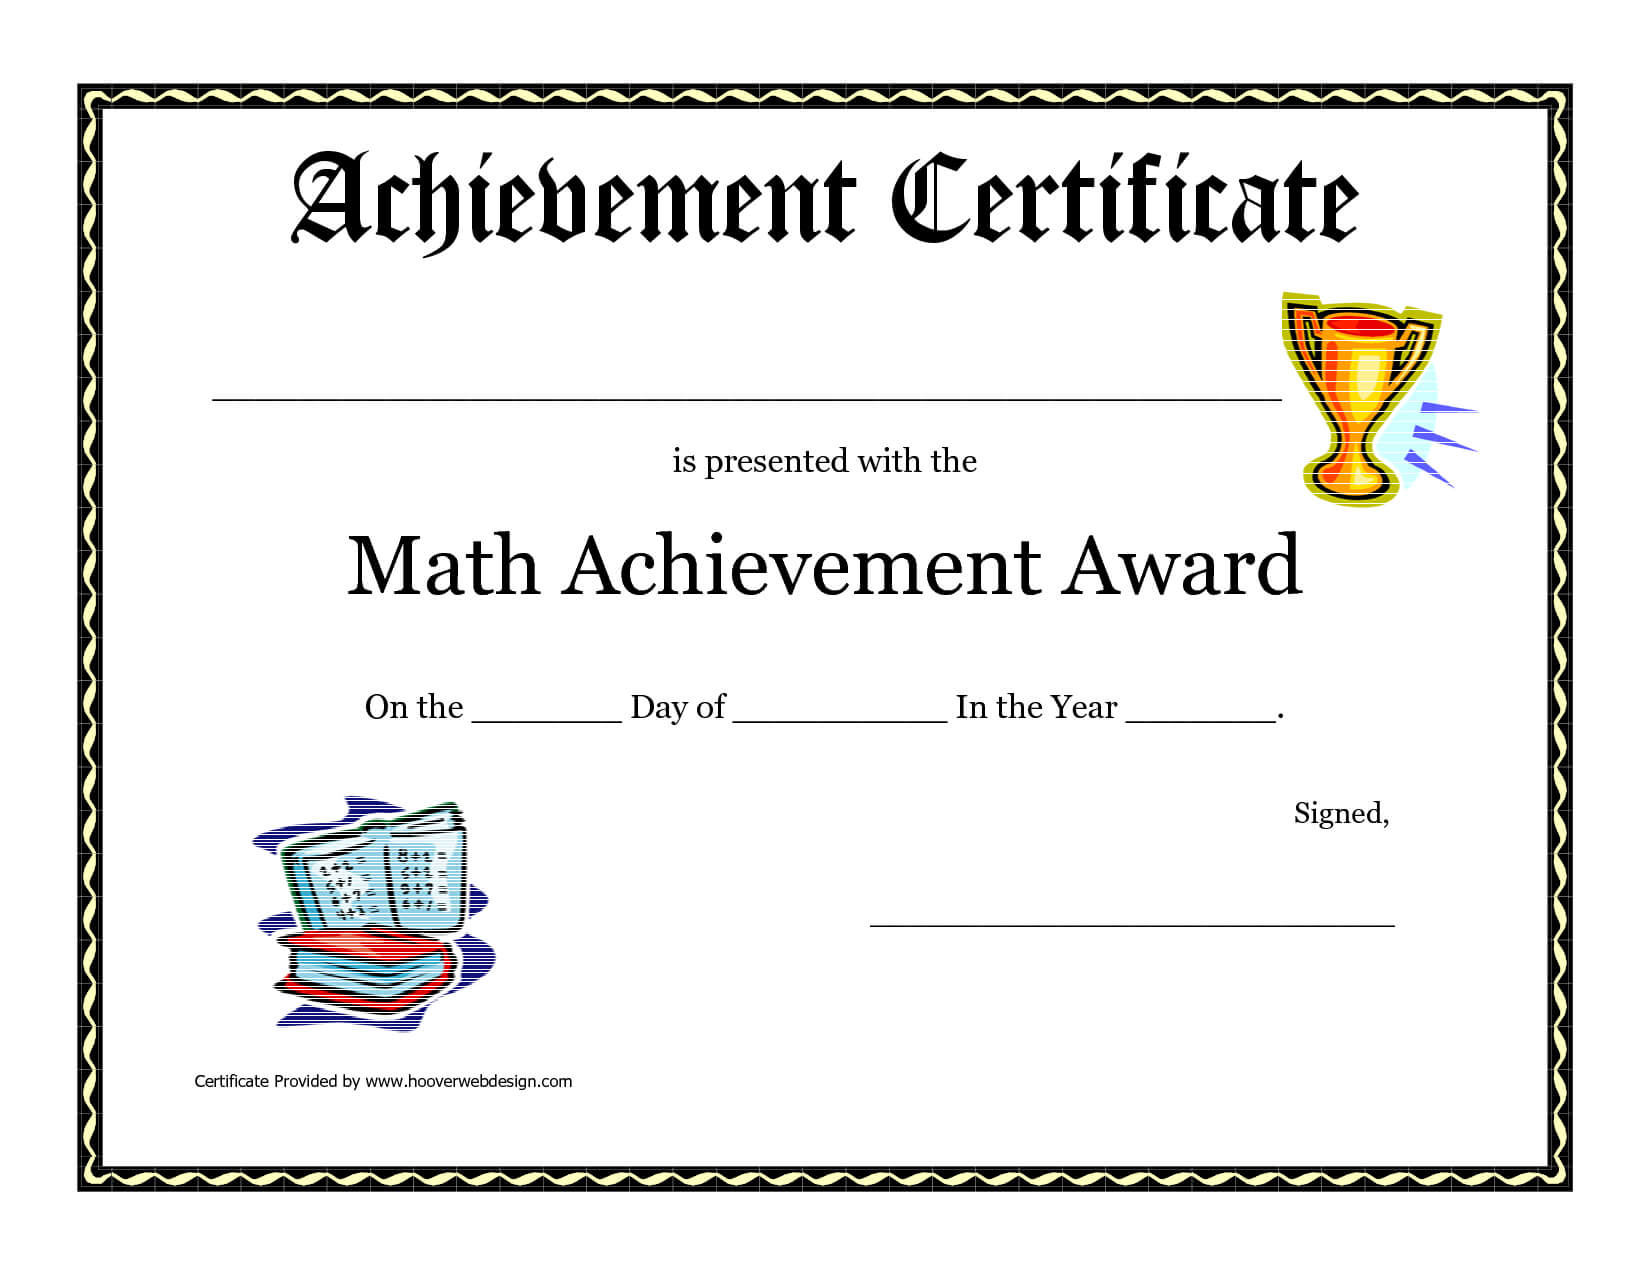 Math Achievement Award Printable Certificate Pdf | Award Throughout Classroom Certificates Templates